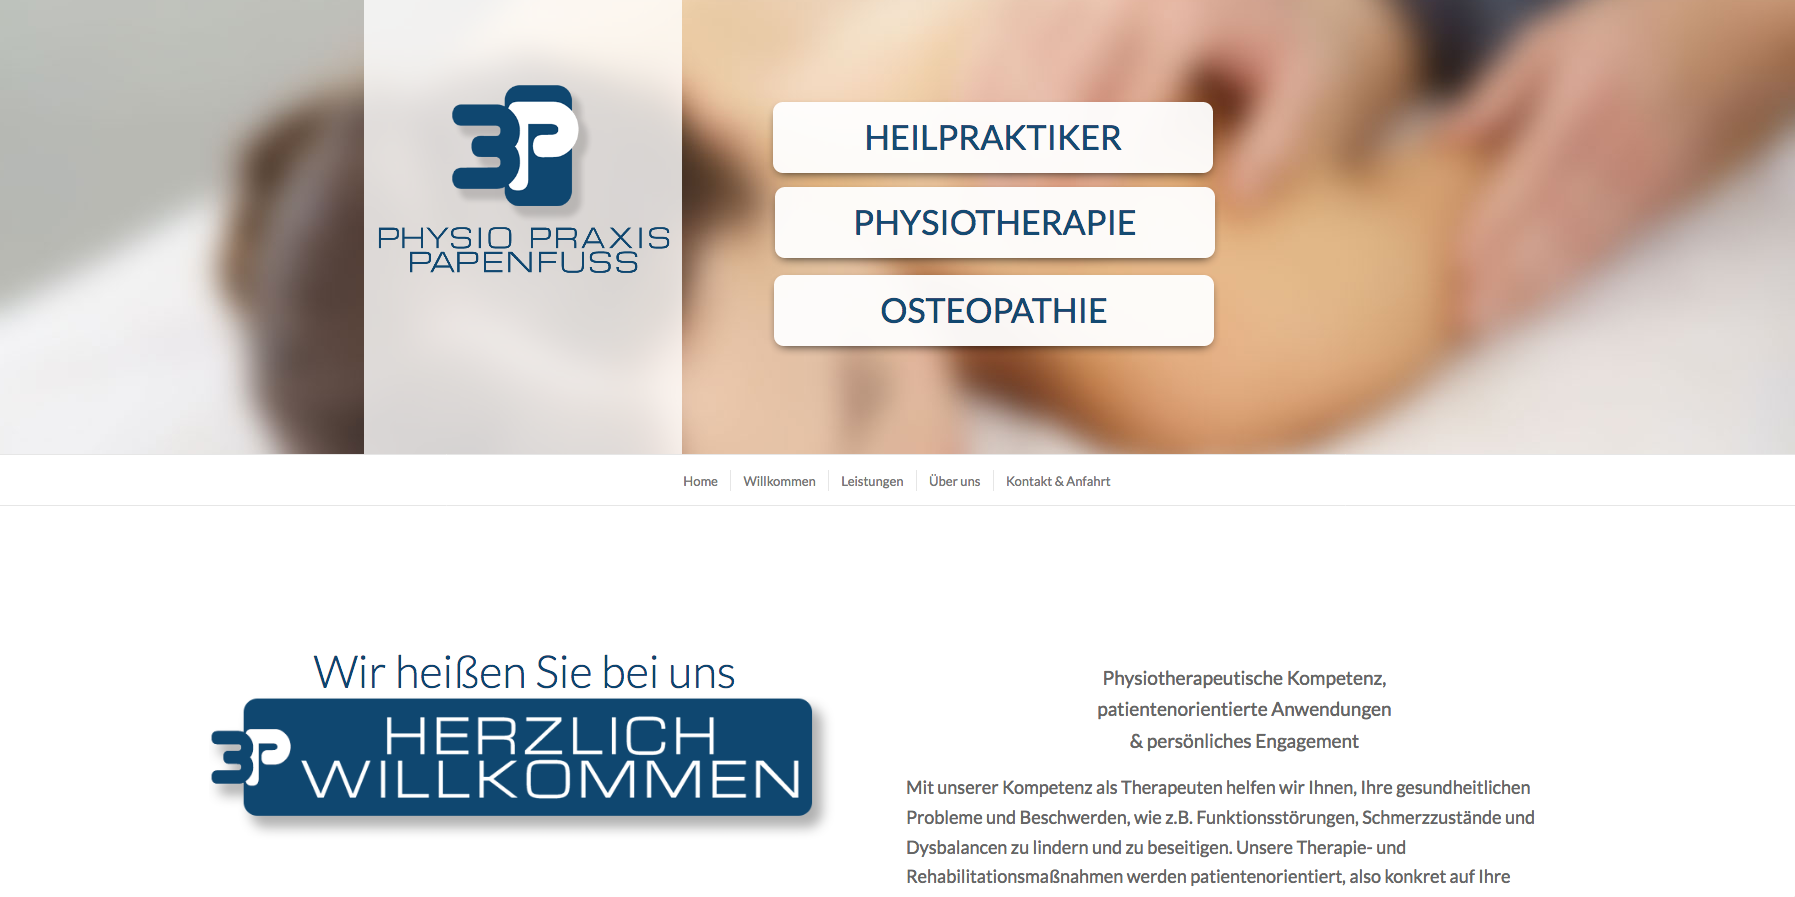 3P Physio Praxis Papenfuss Websitekopf